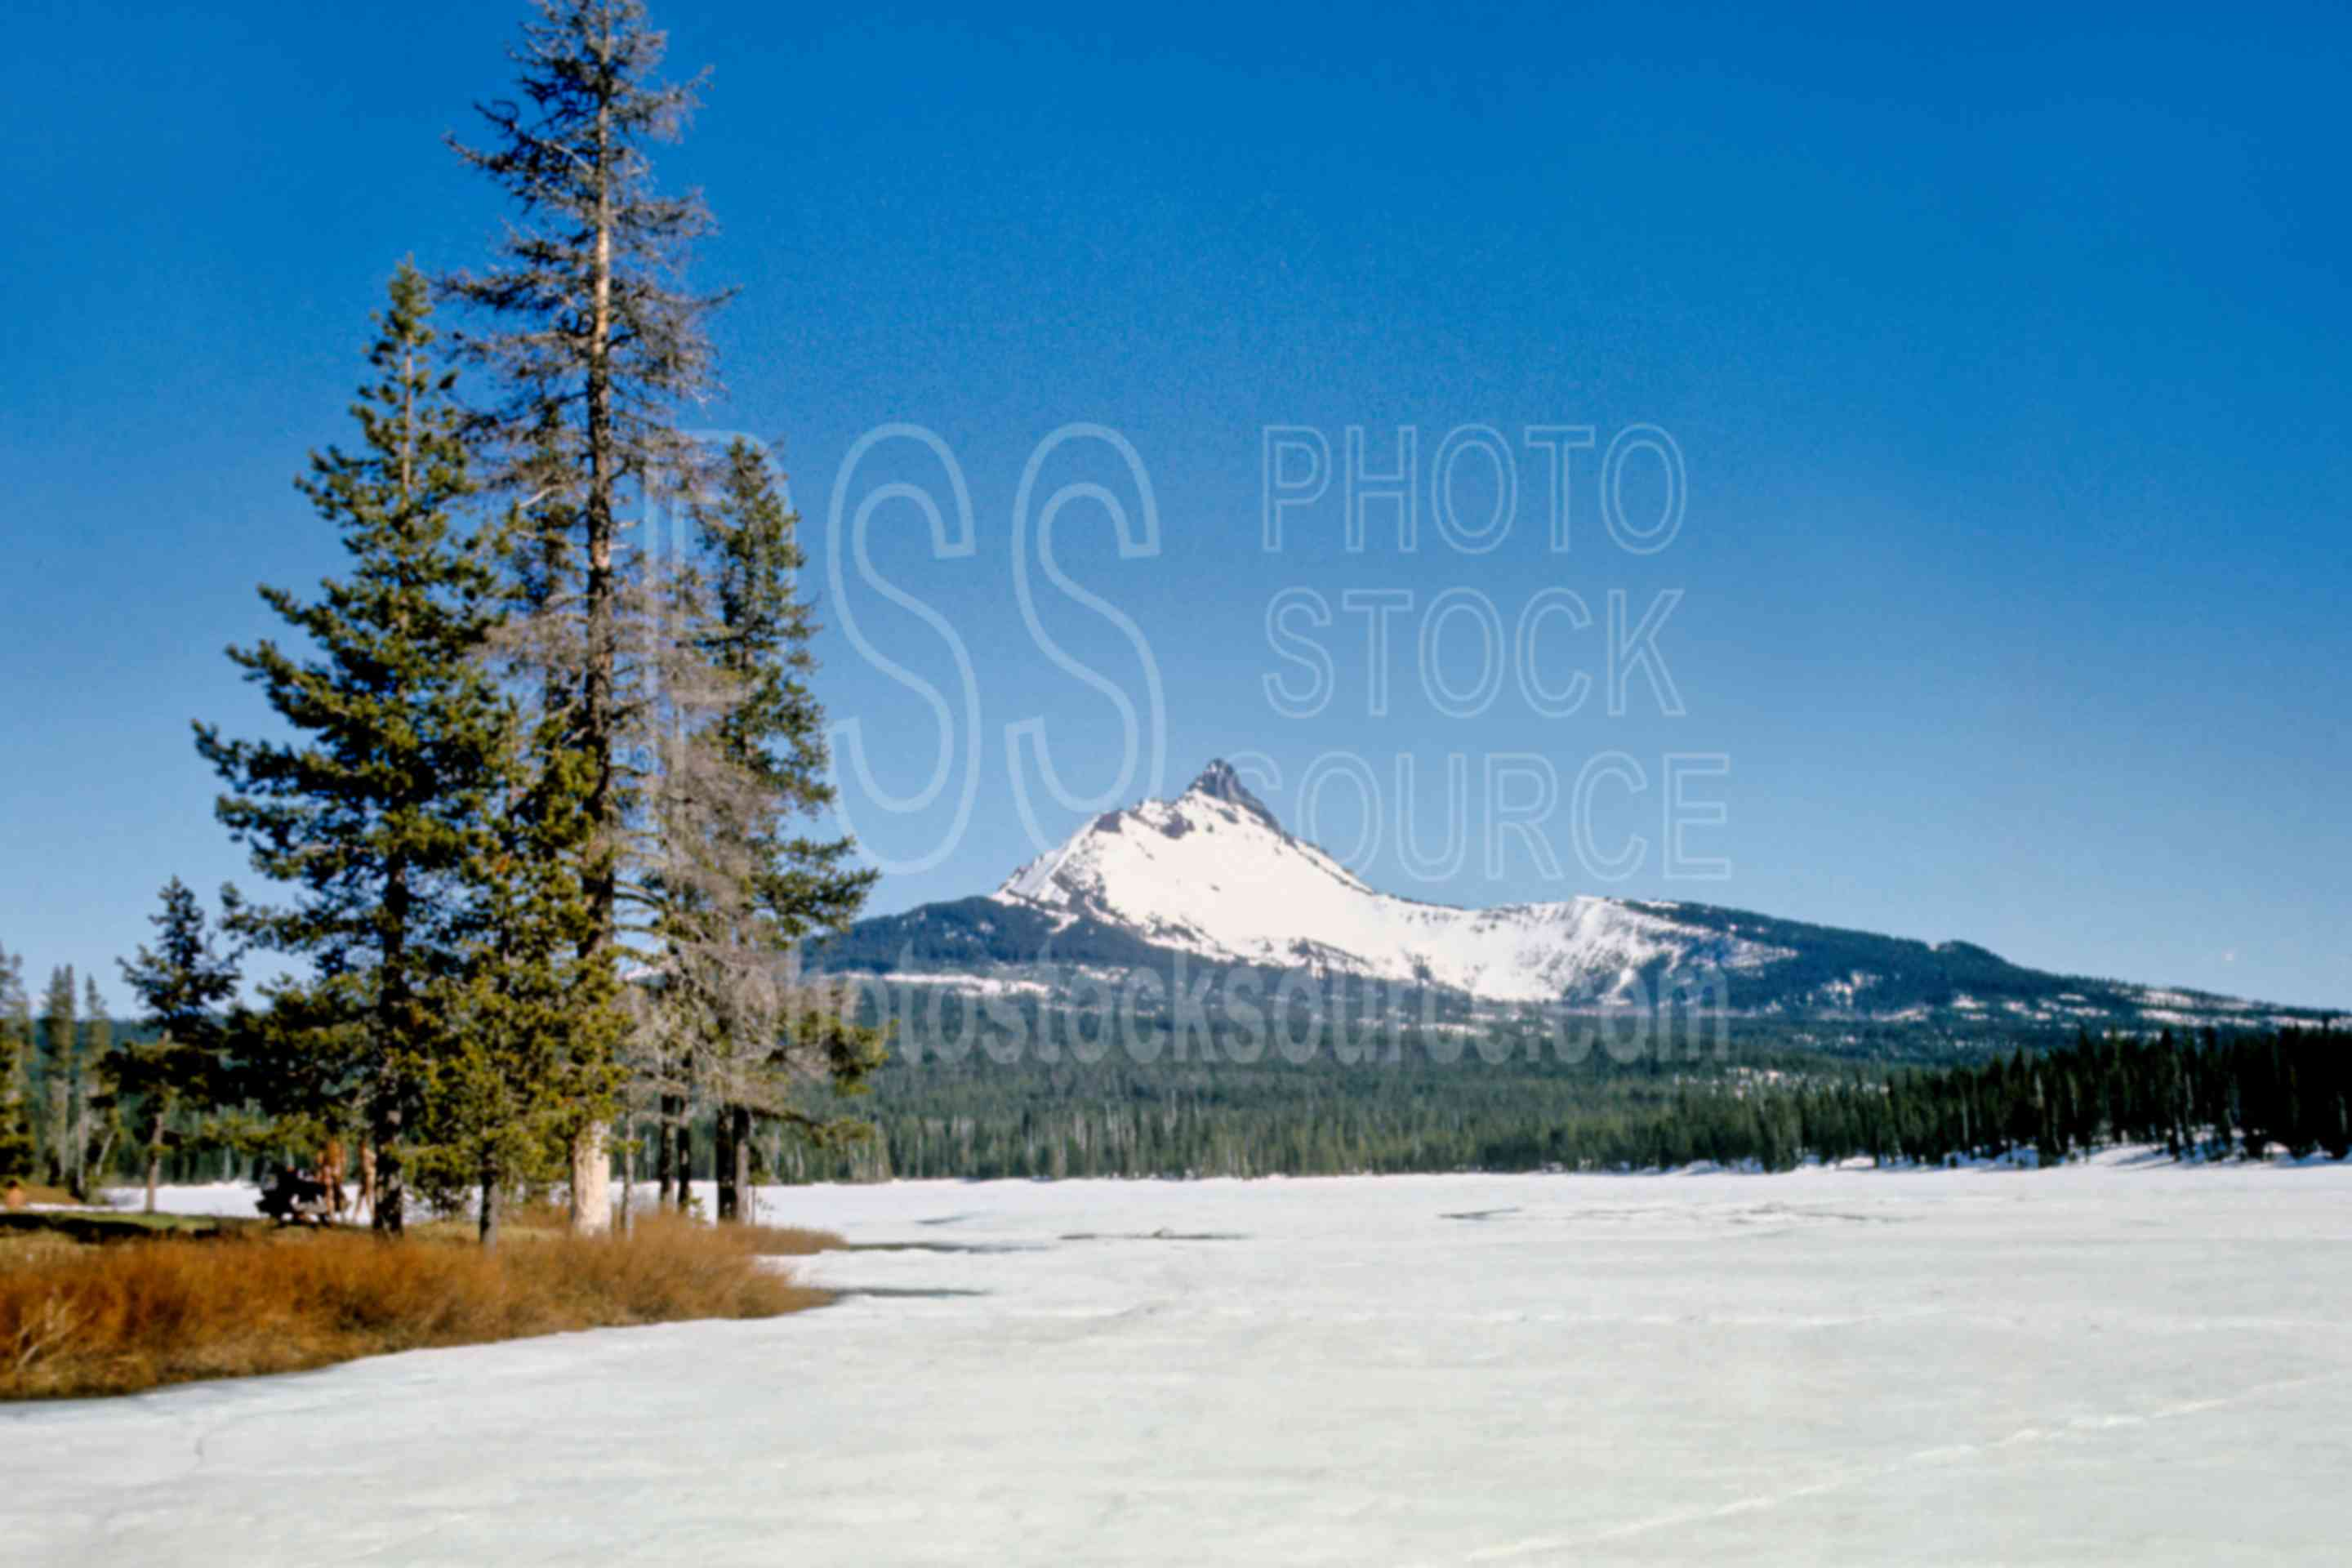 Big Lake, Mt. Washington,santiam pass,snow,frozen lake,ices,mt. washington,big lake,lake,mount,winter,lakes rivers,mountains